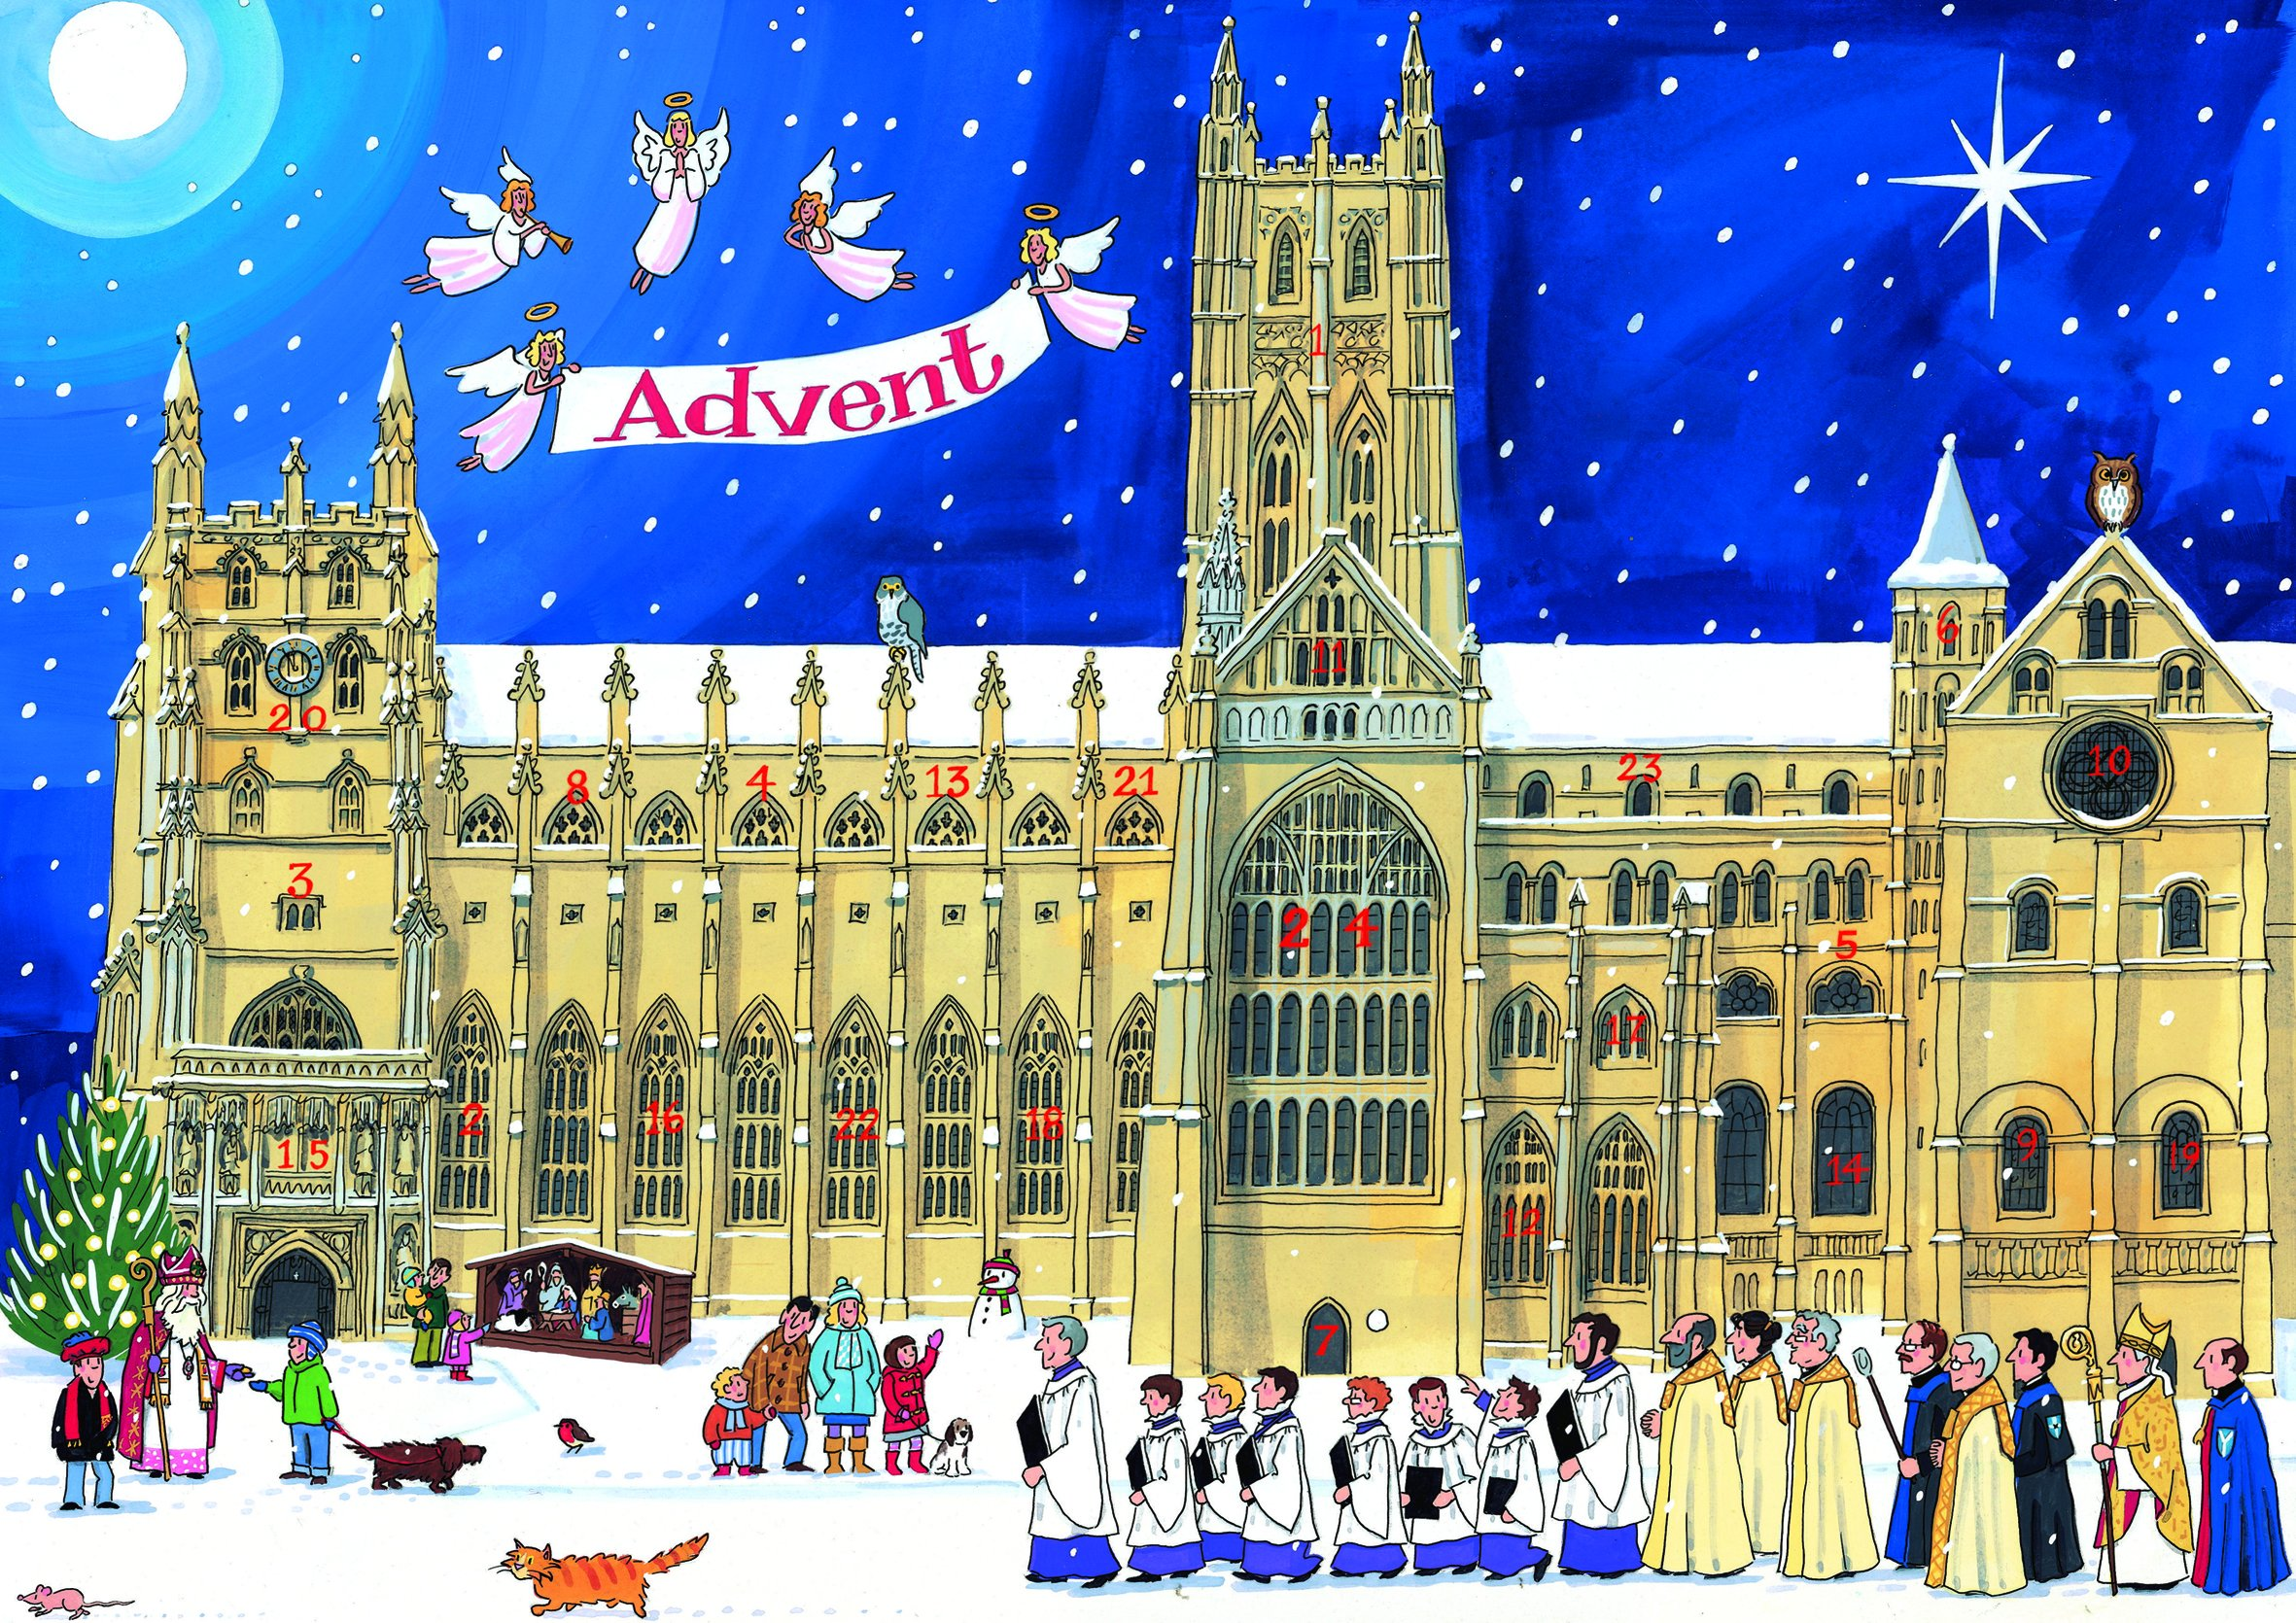 Alison Gardiner Famous Illustrator Unique Traditional Advent Calendar  - Designed in England - Festive Scene at a Cathedral